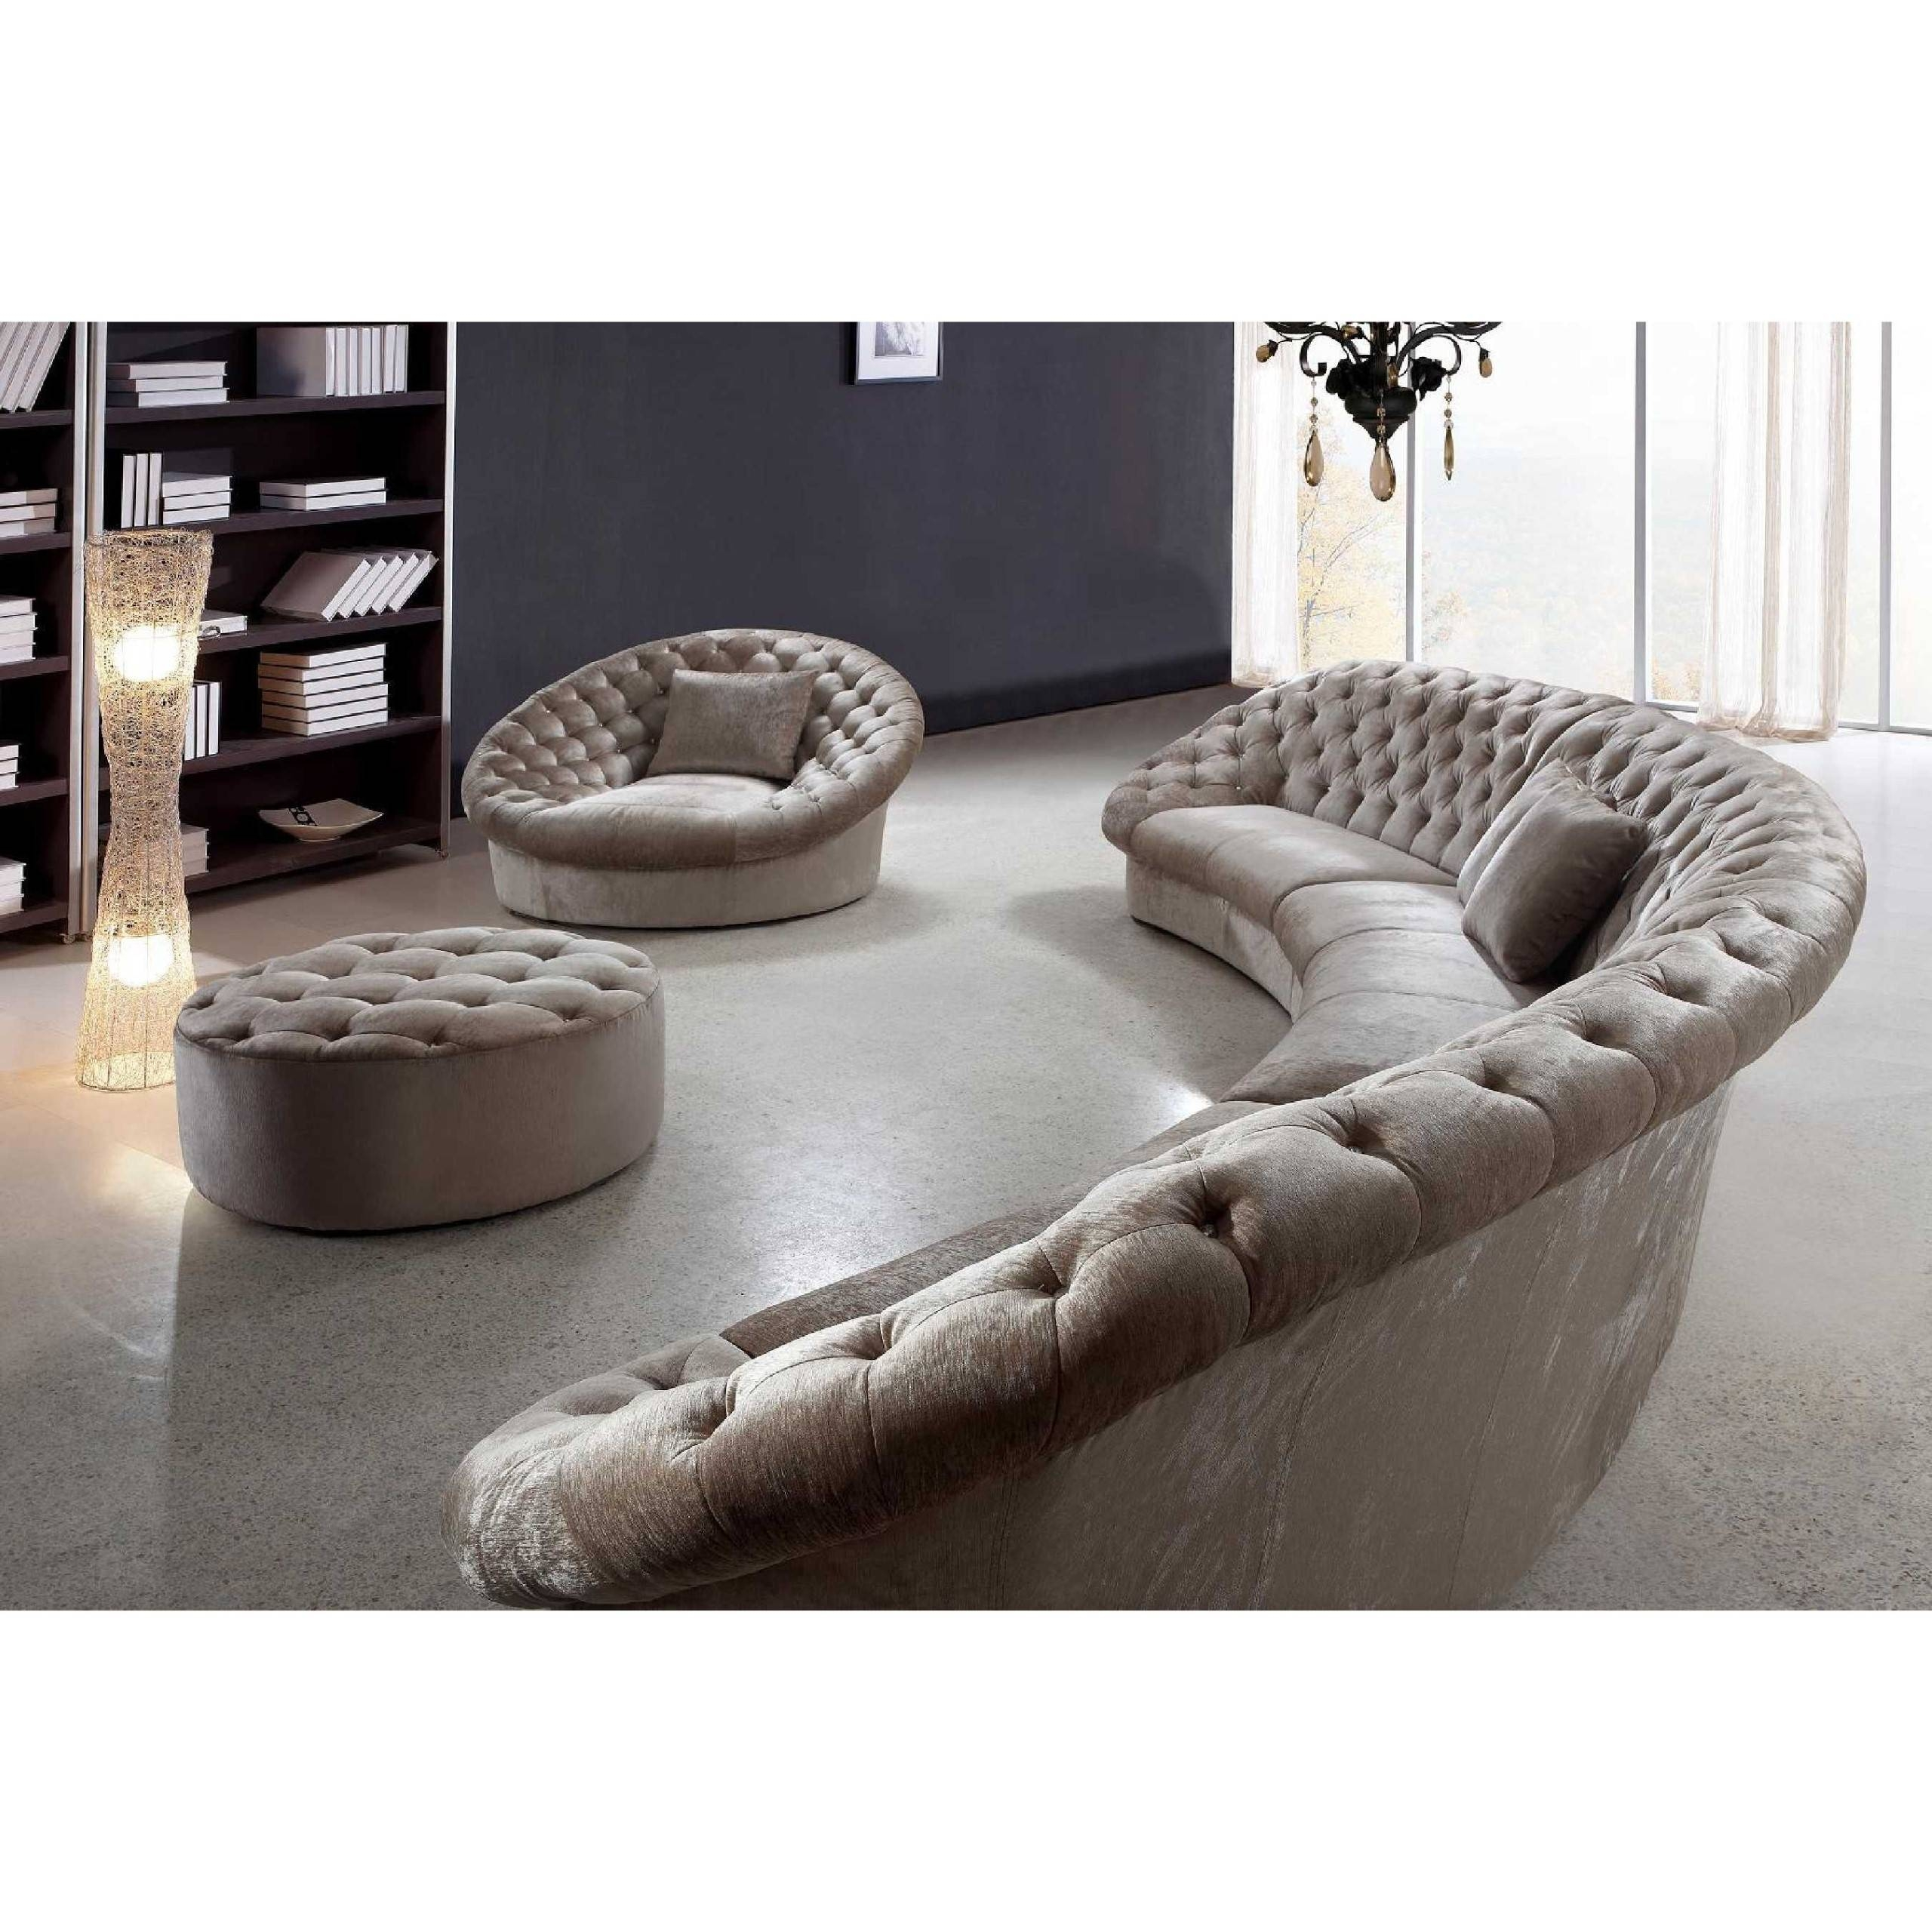 Furniture: Curve Sofa | Semi Circular Sectional Sofa | Curved throughout Semi Circular Sectional Sofas (Image 5 of 15)